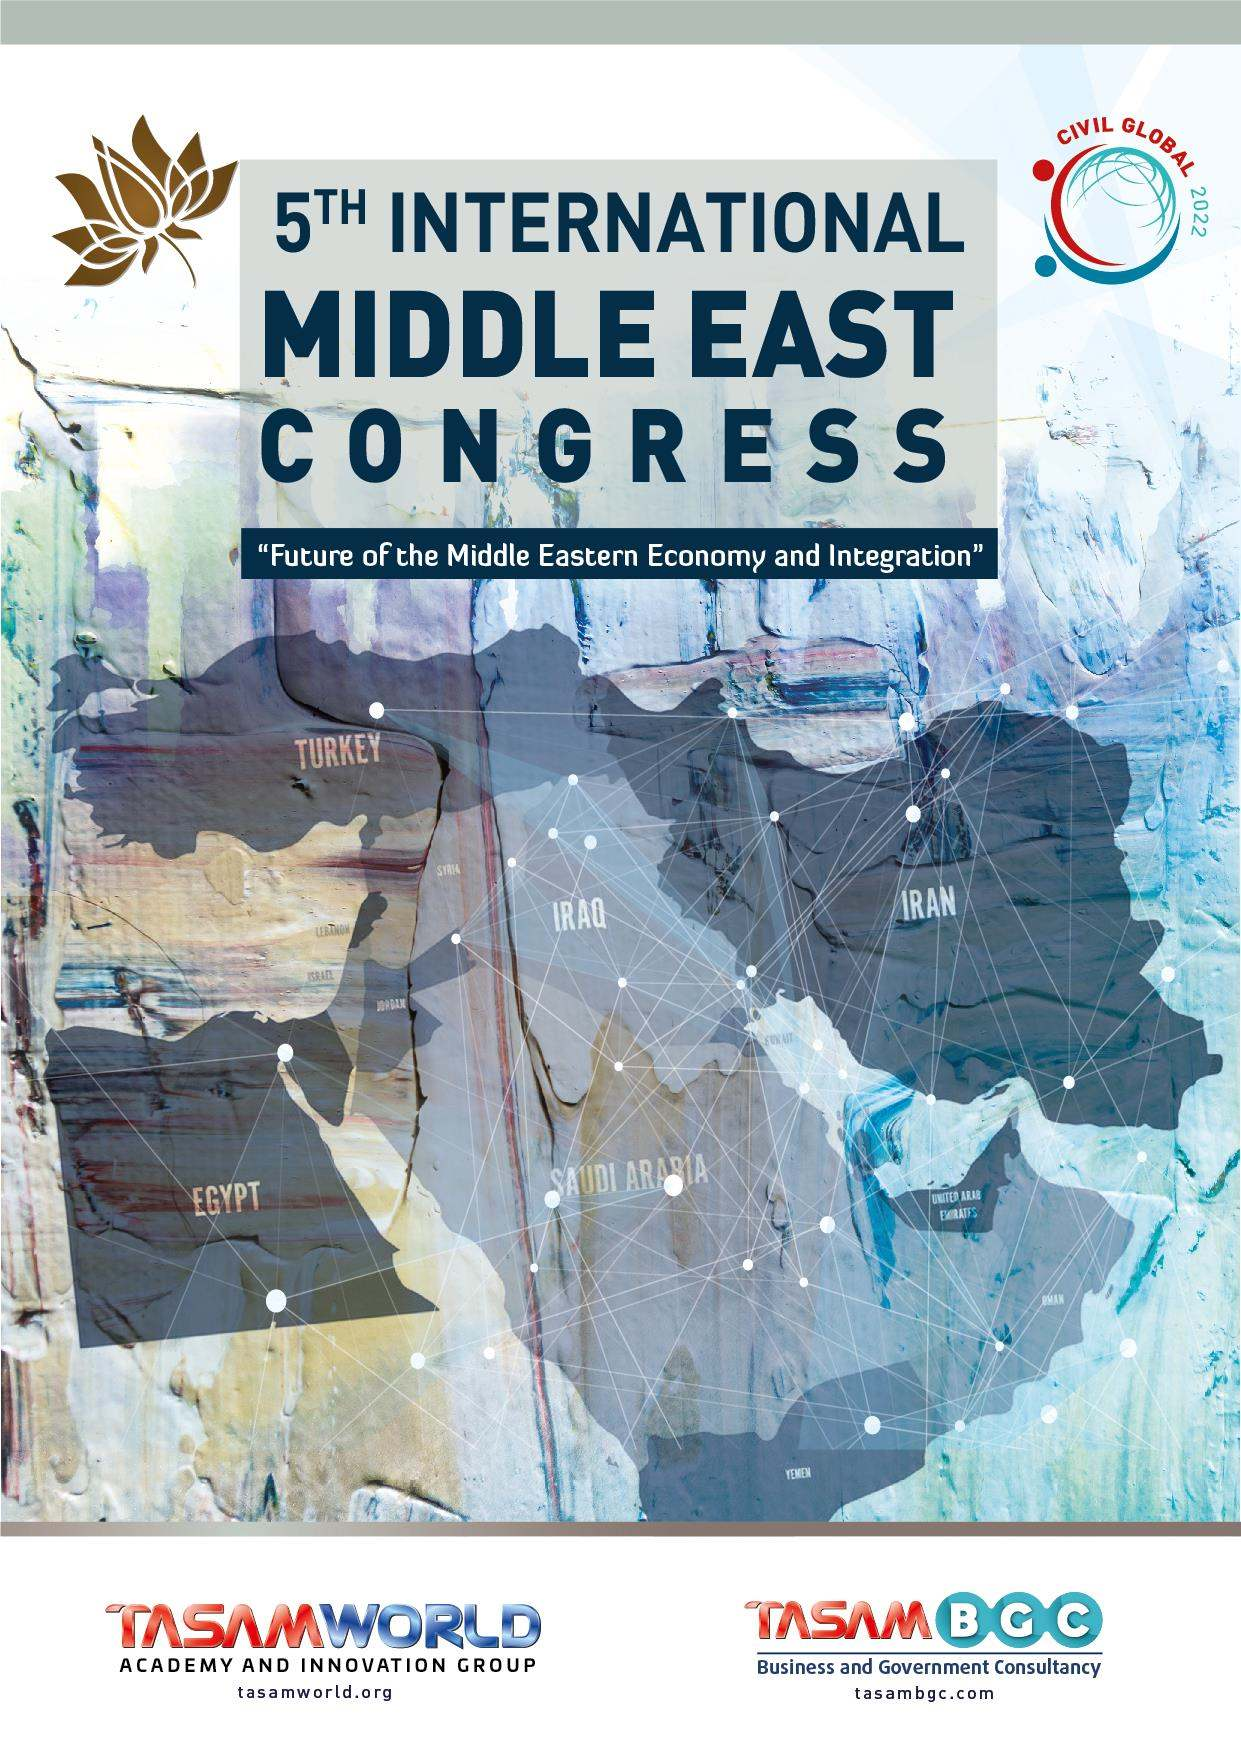 5TH International Middle East Congress